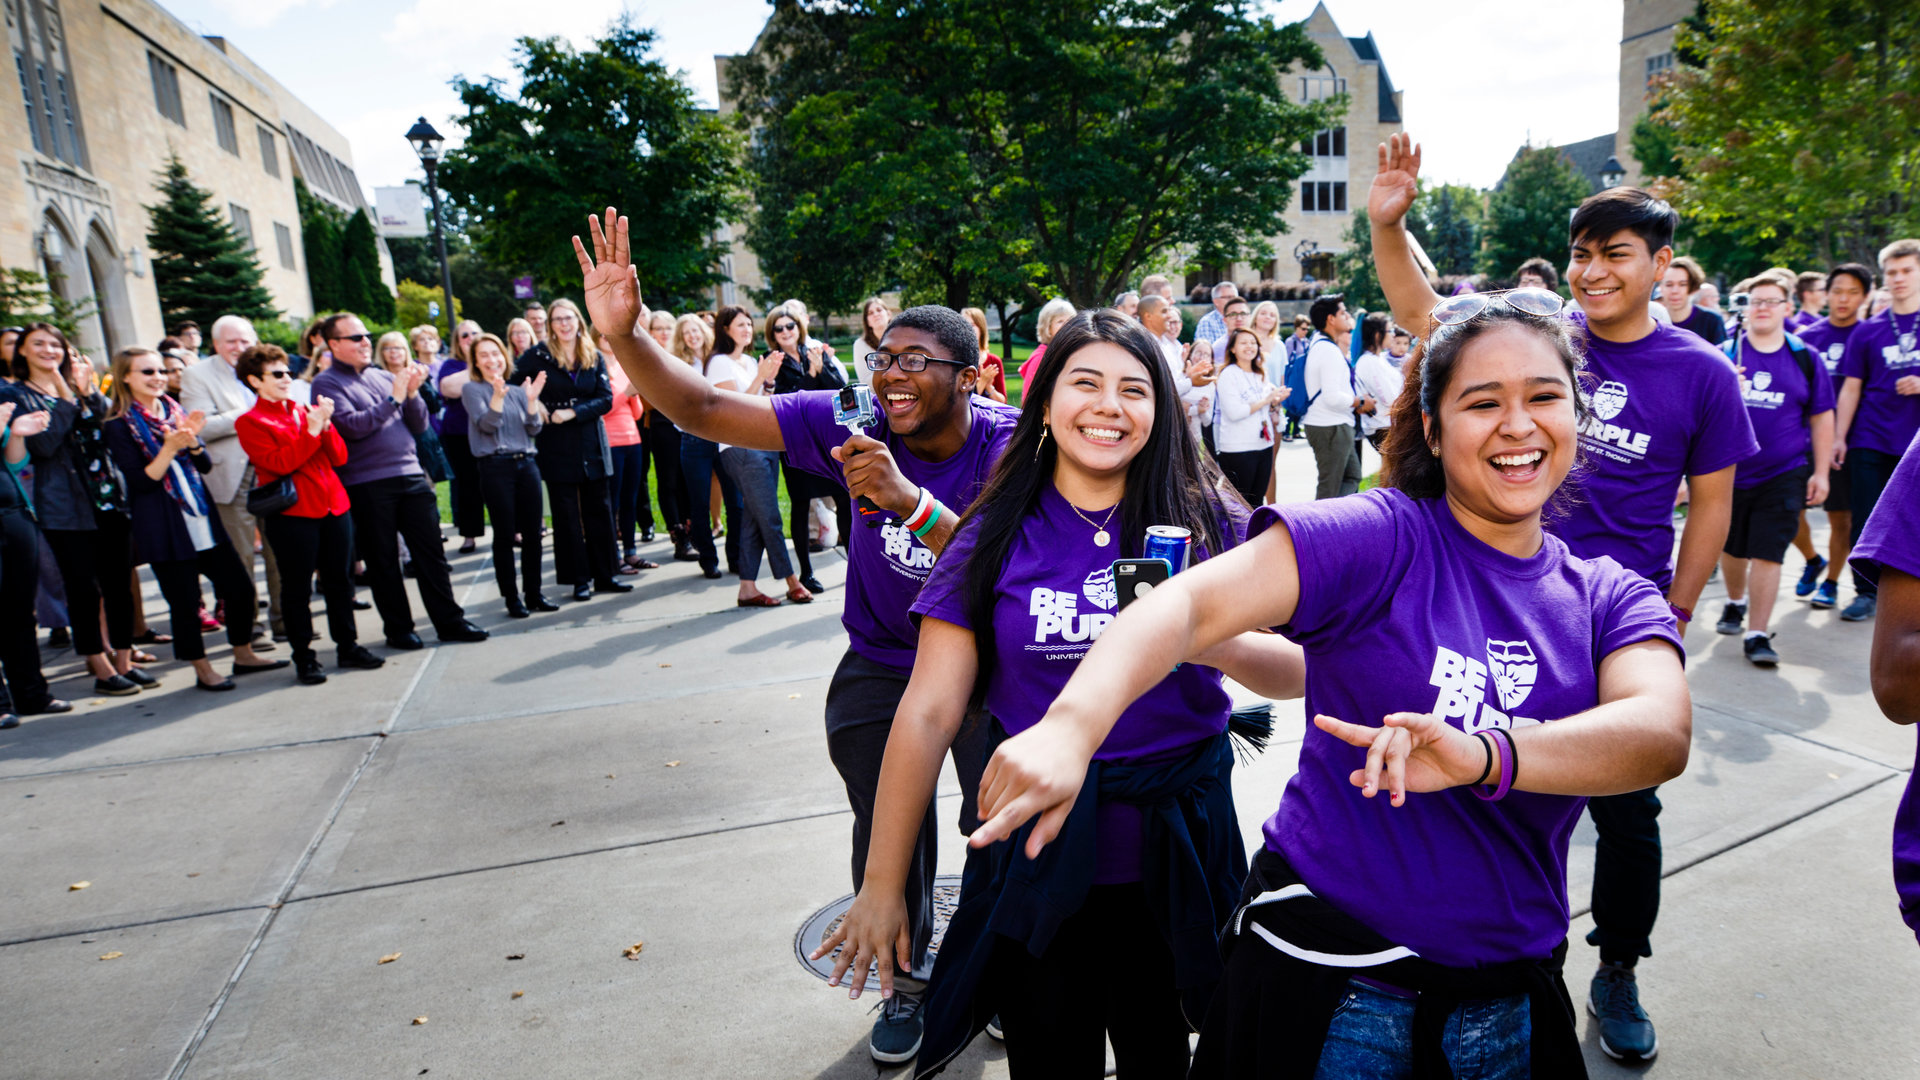 Students march thorugh the arches as part of their freshman experience